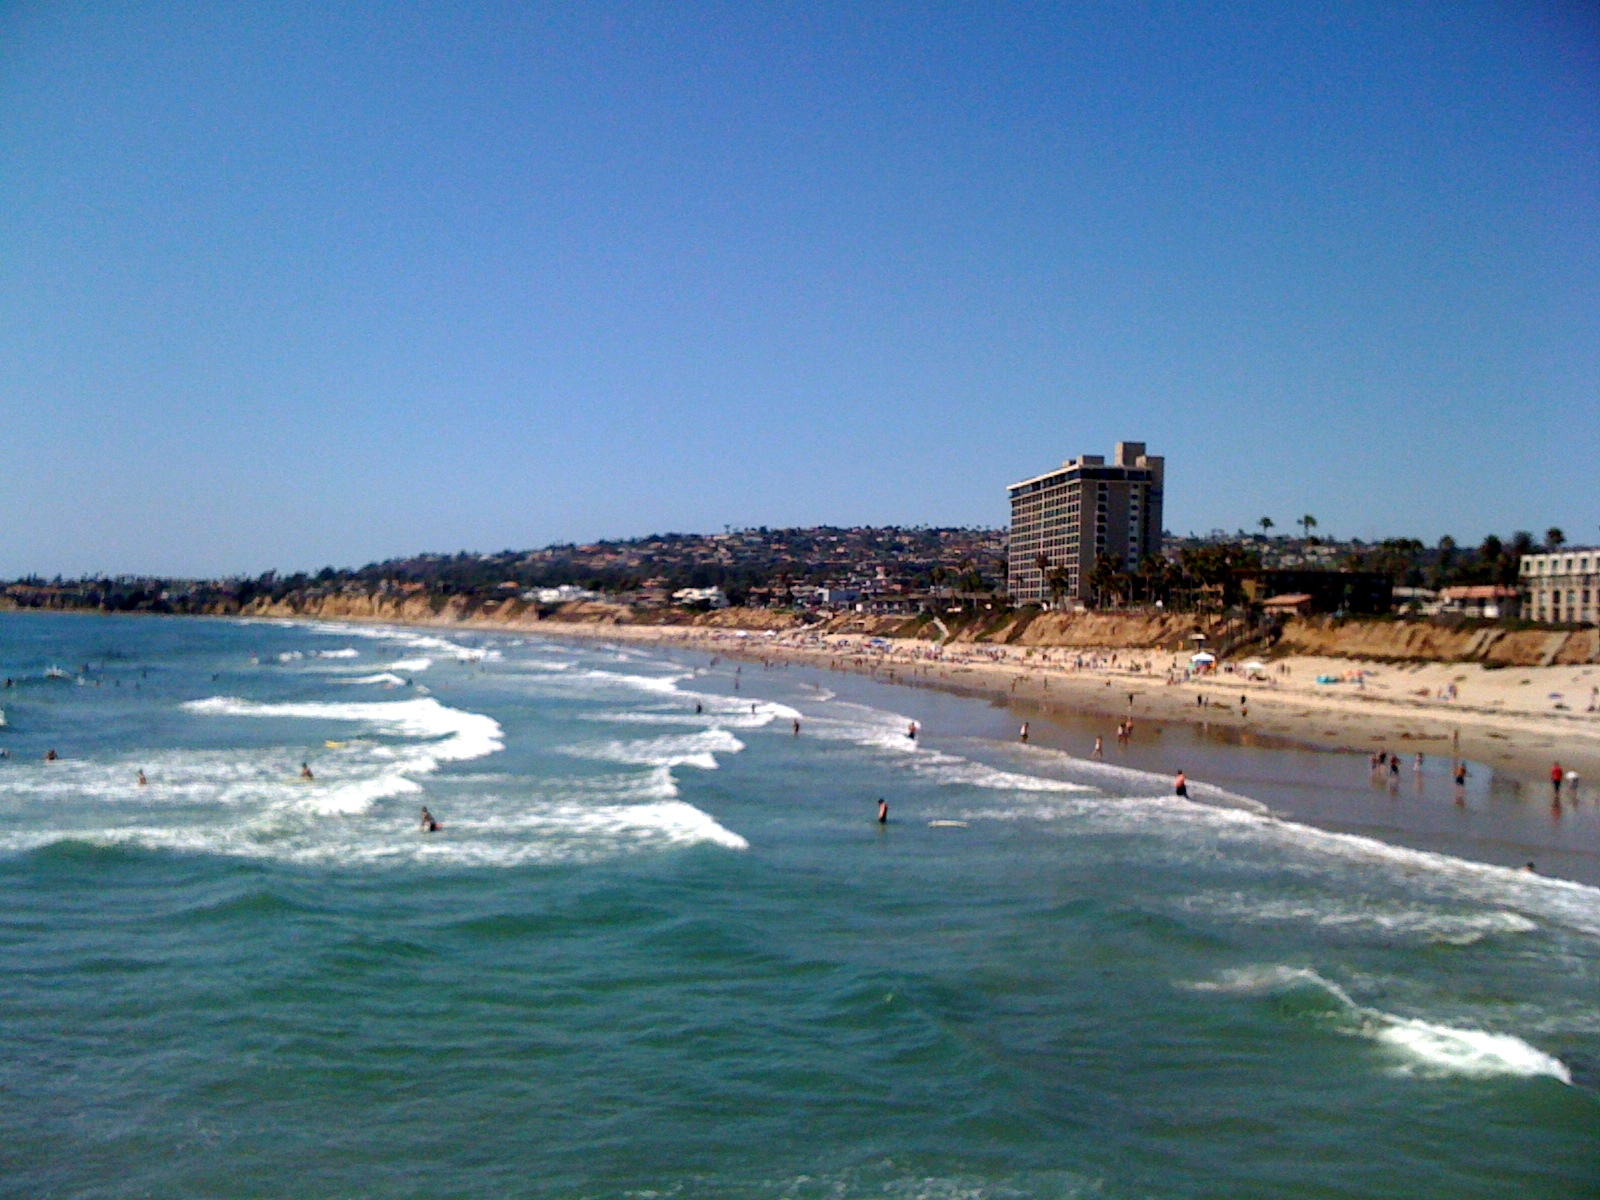 San Diego mac repair repairing iphone screens near pacific beach. visit san diego mac repair in la jolla